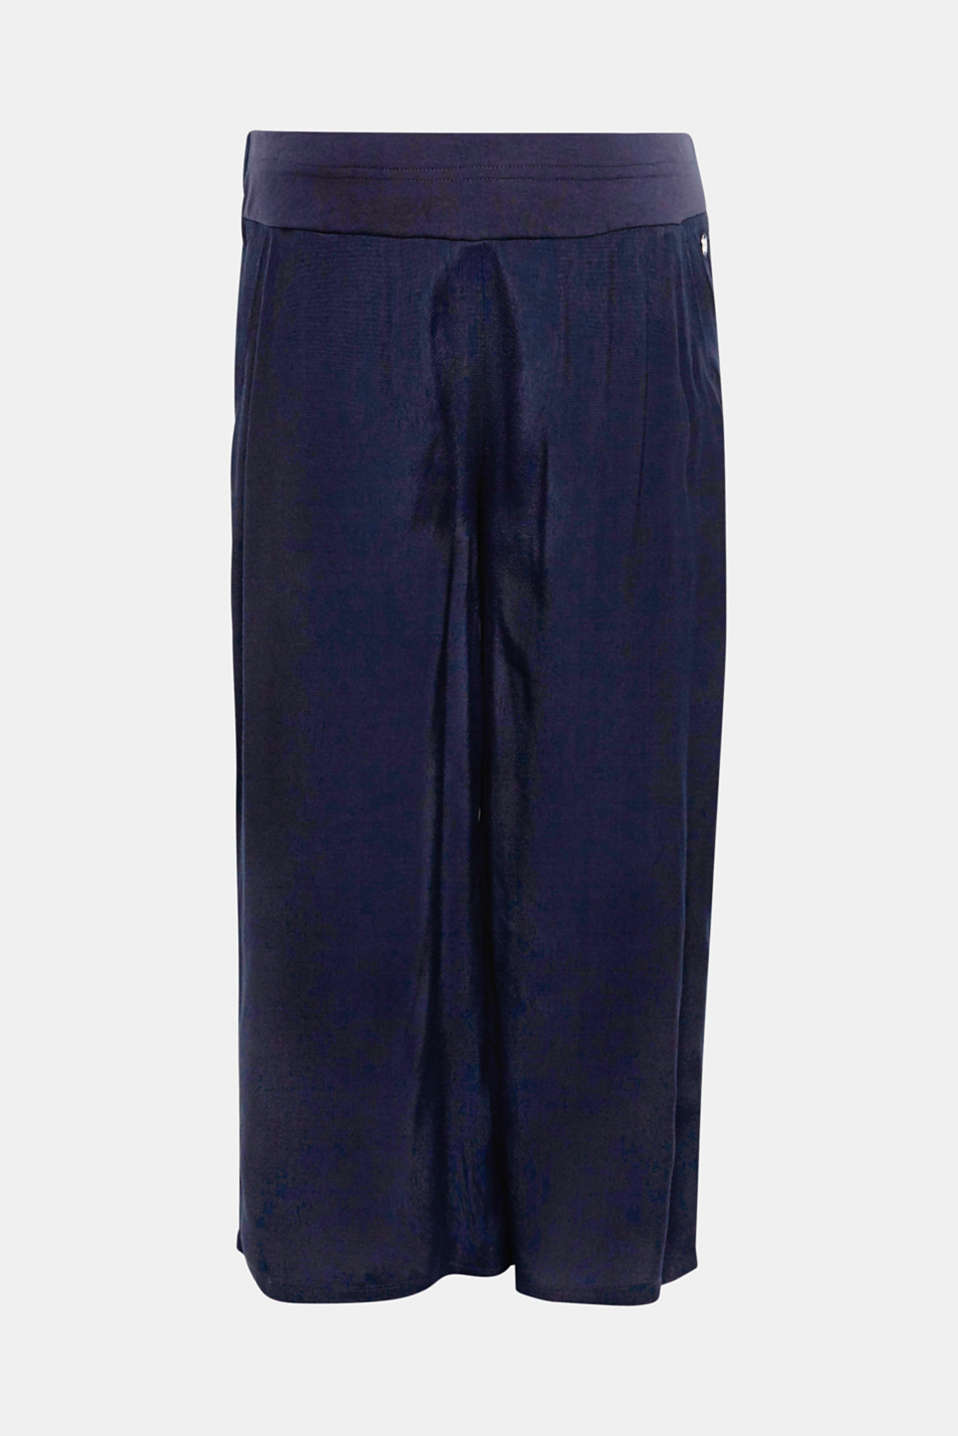 Feeling of well-being guaranteed: the loose cut and wide, over-bump waistband make these culottes mega comfy.